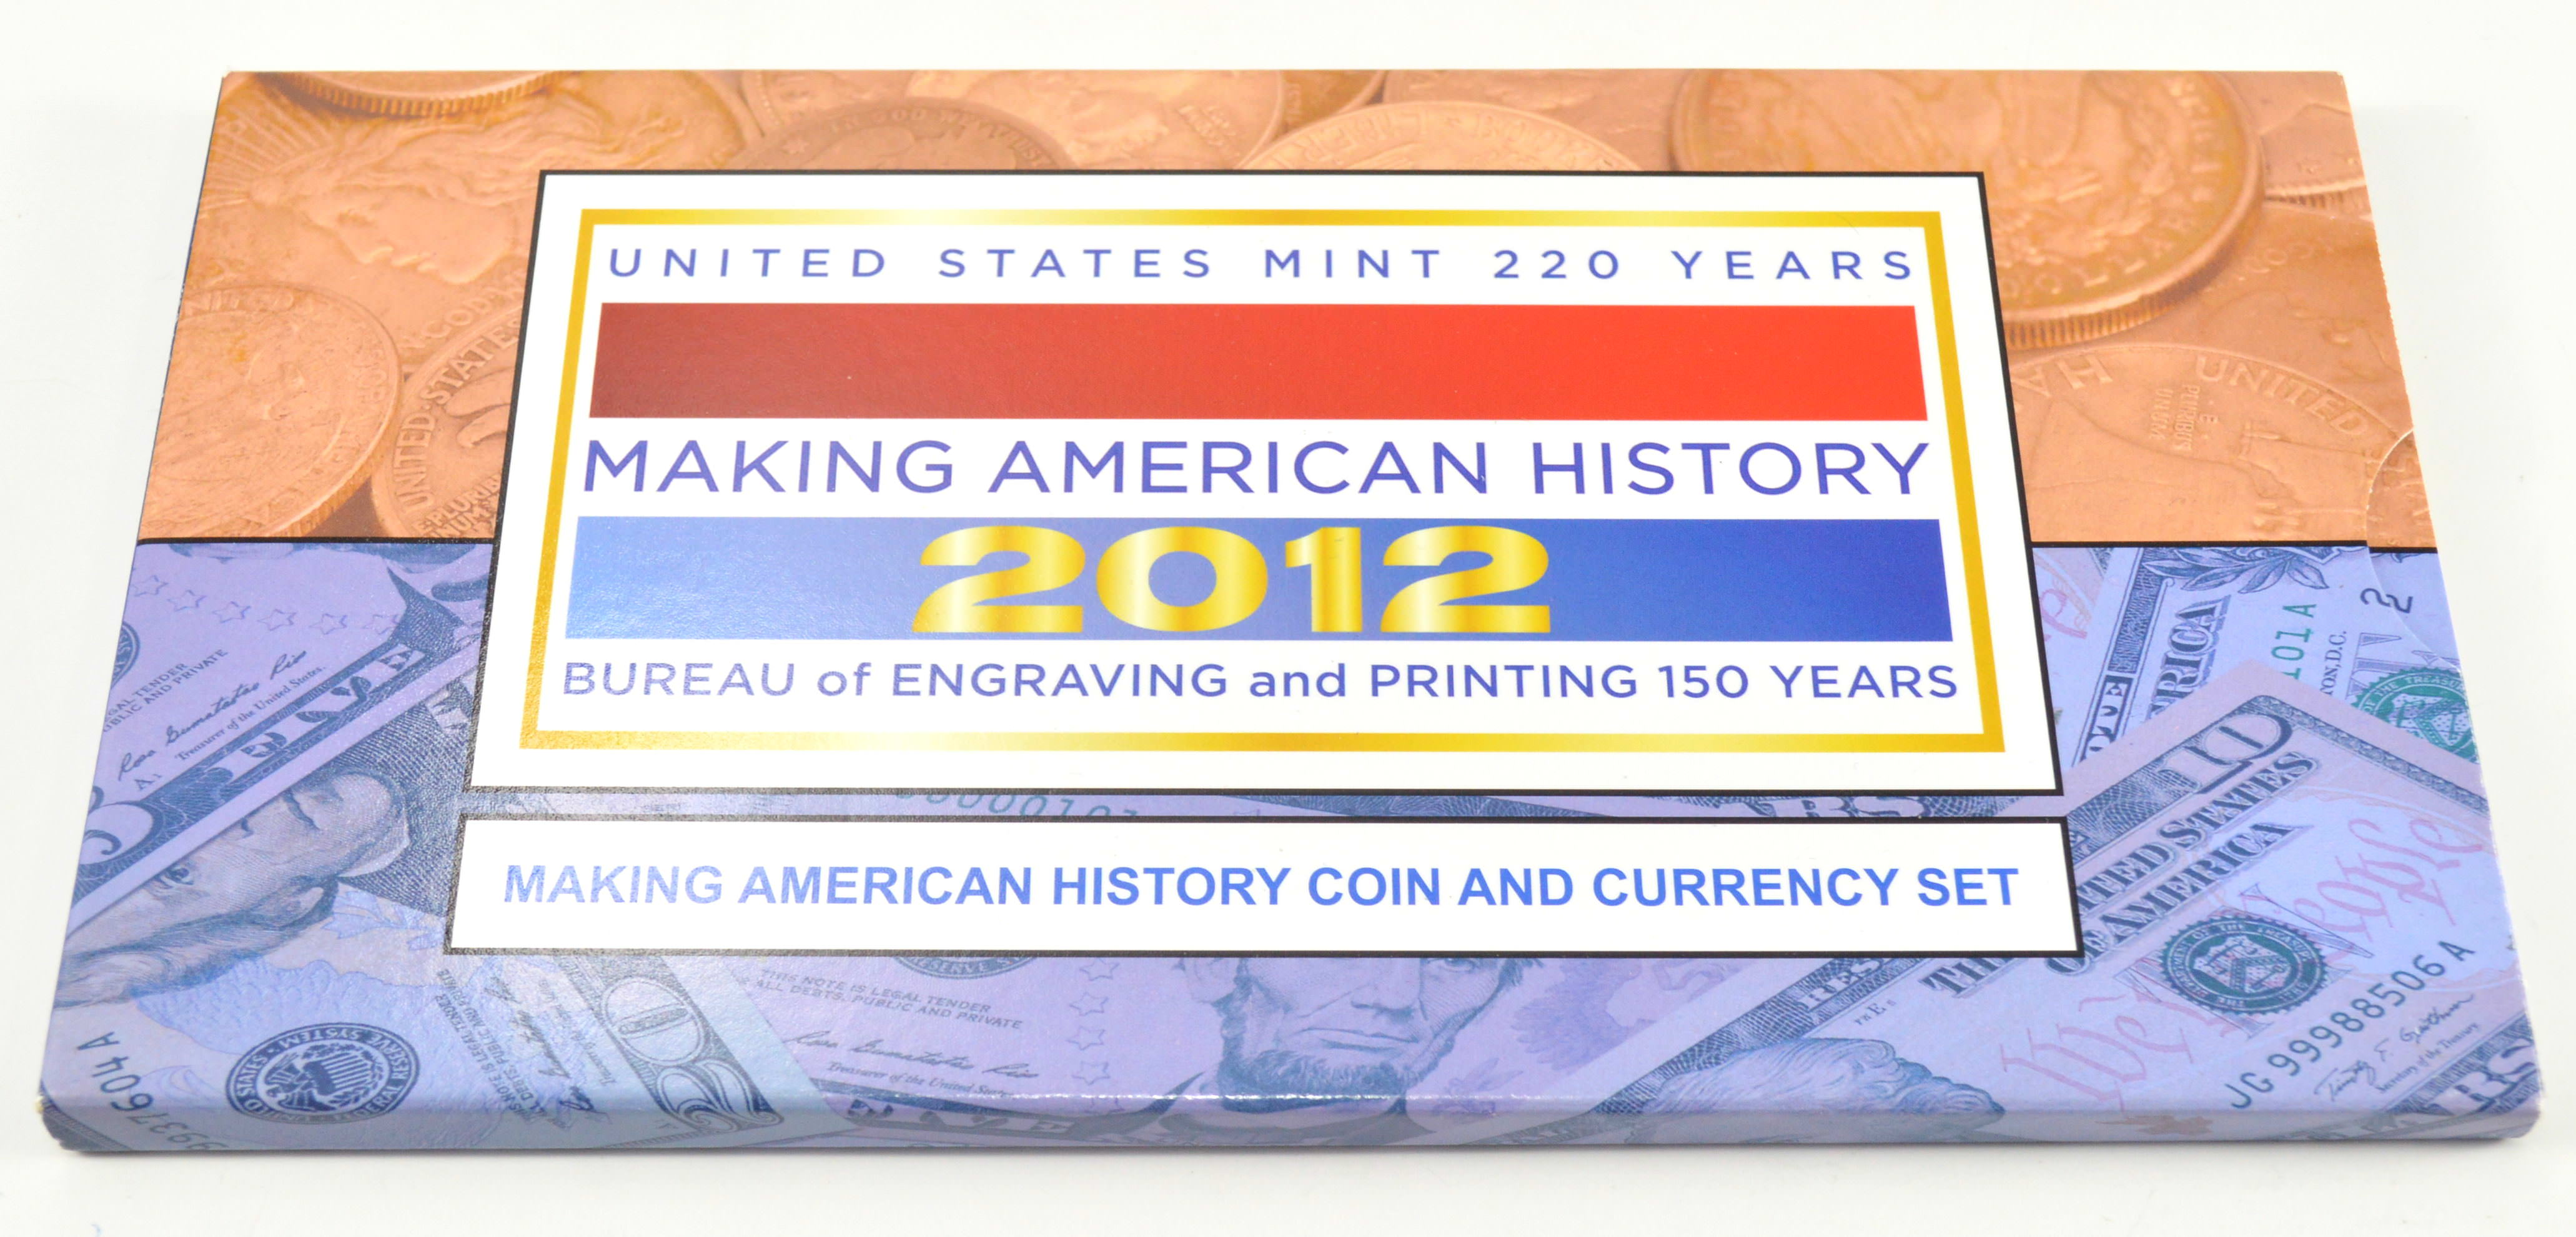 2012 Making American History 220 Years Coin And Currency